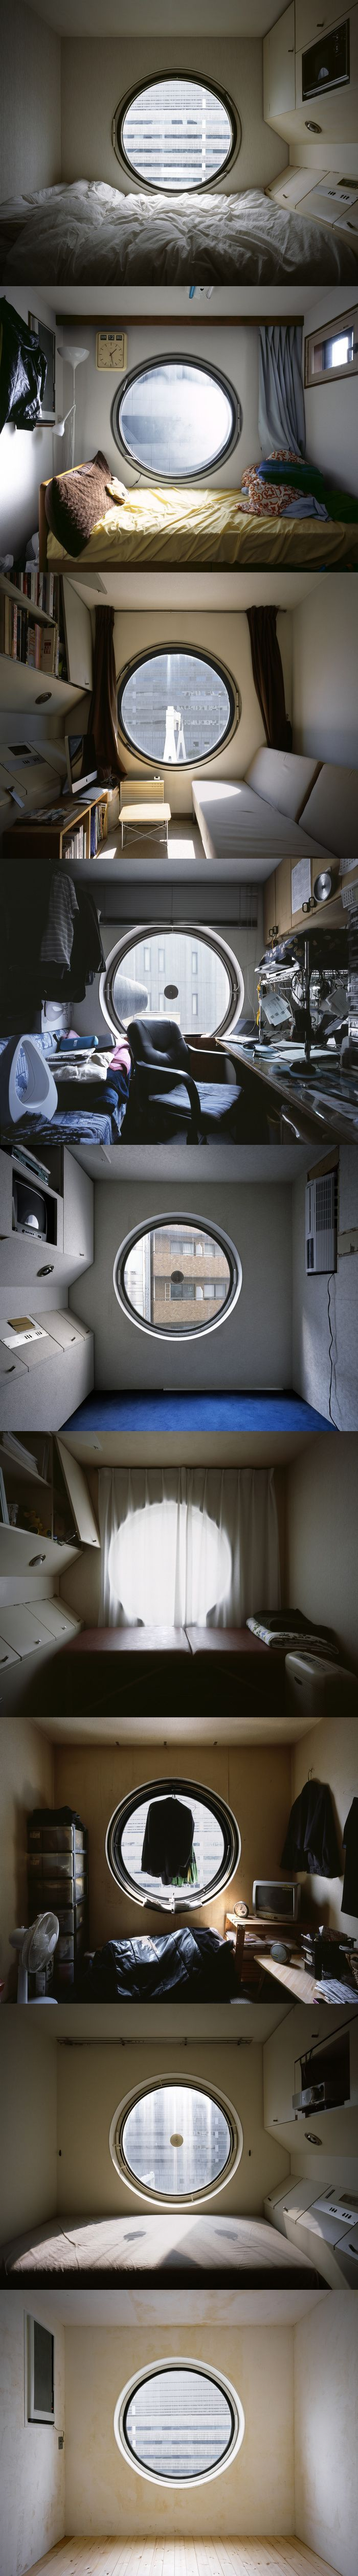 this is capsule hotel in japan...giving me interesting ideas for the comic I'm developing...